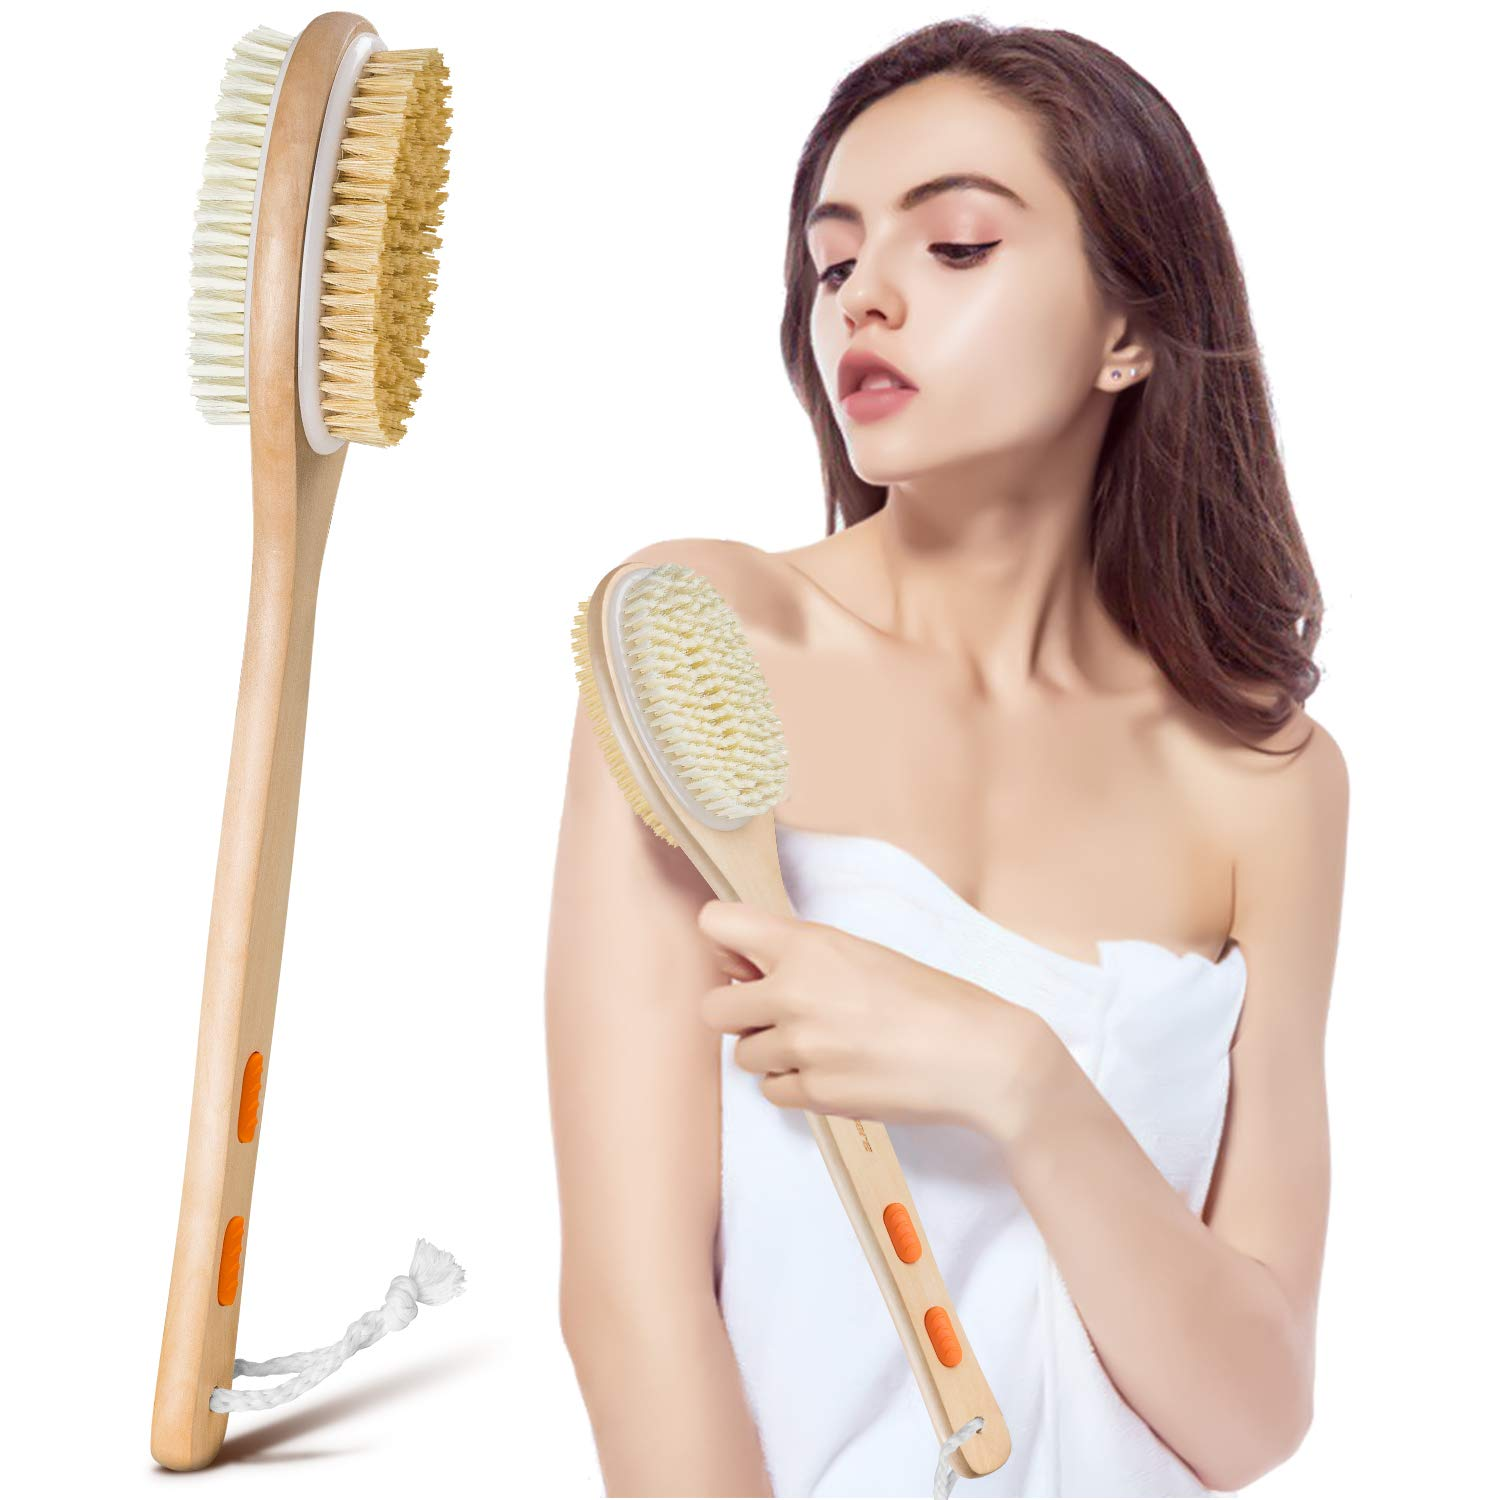 Shower Brush Bymore Dry Bargain New life Brushing Body Cellulite for Lymphat and